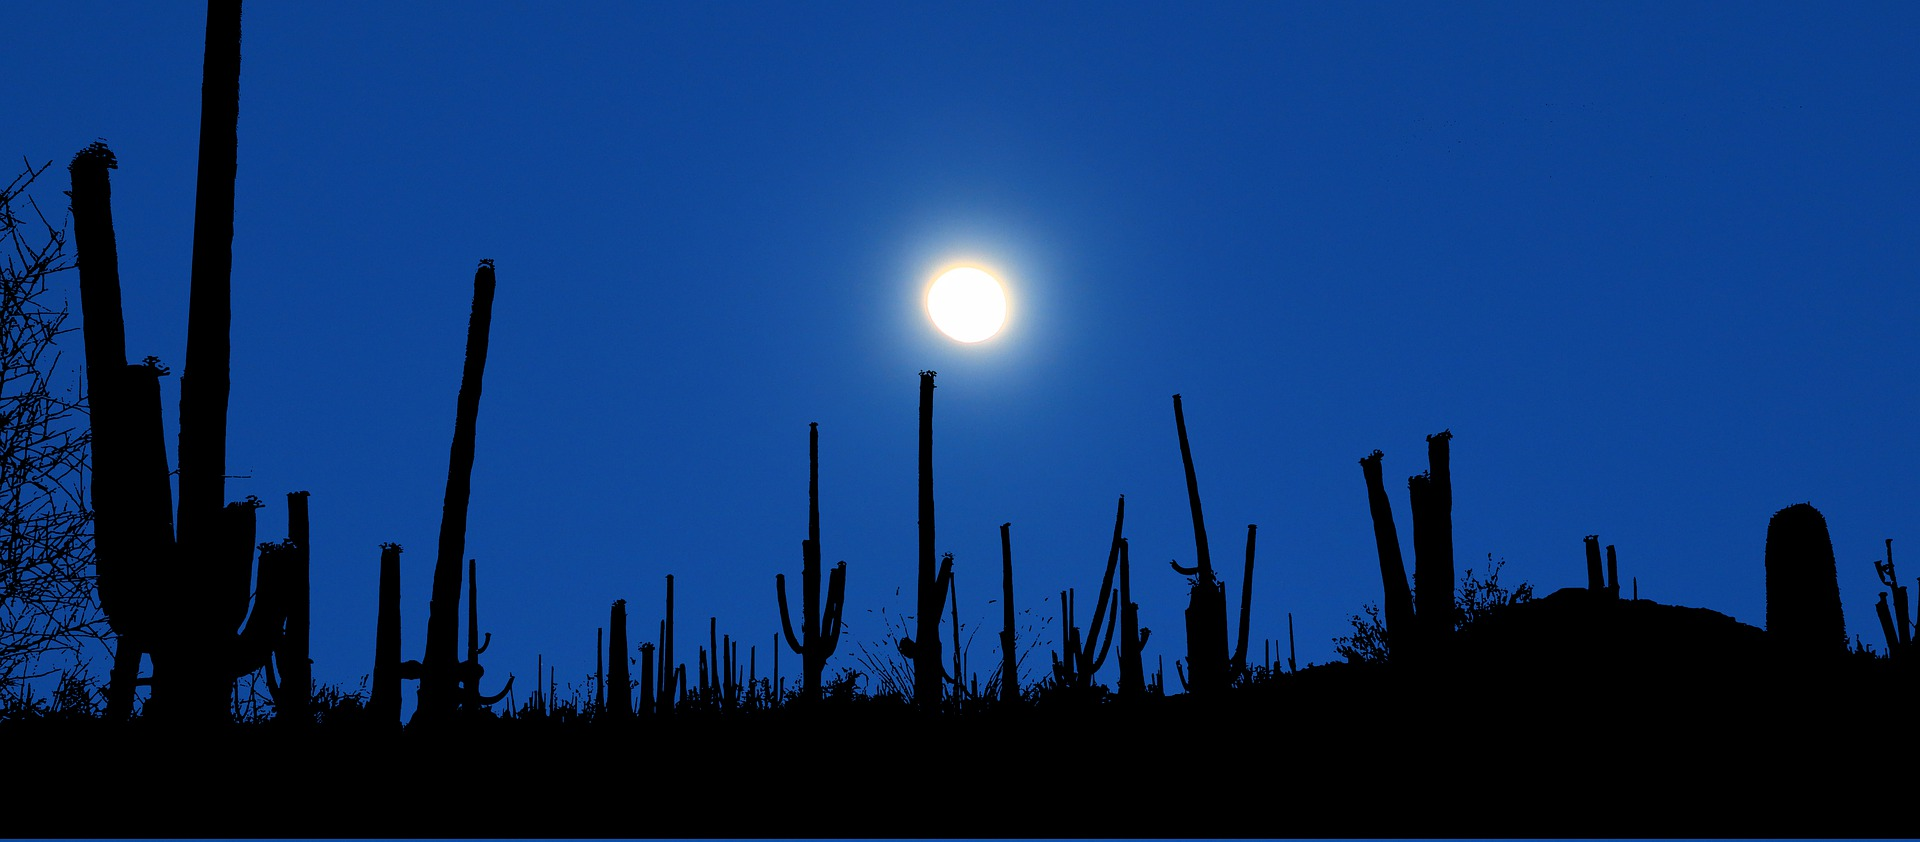 Cacti silhouetted against dark blue sky.